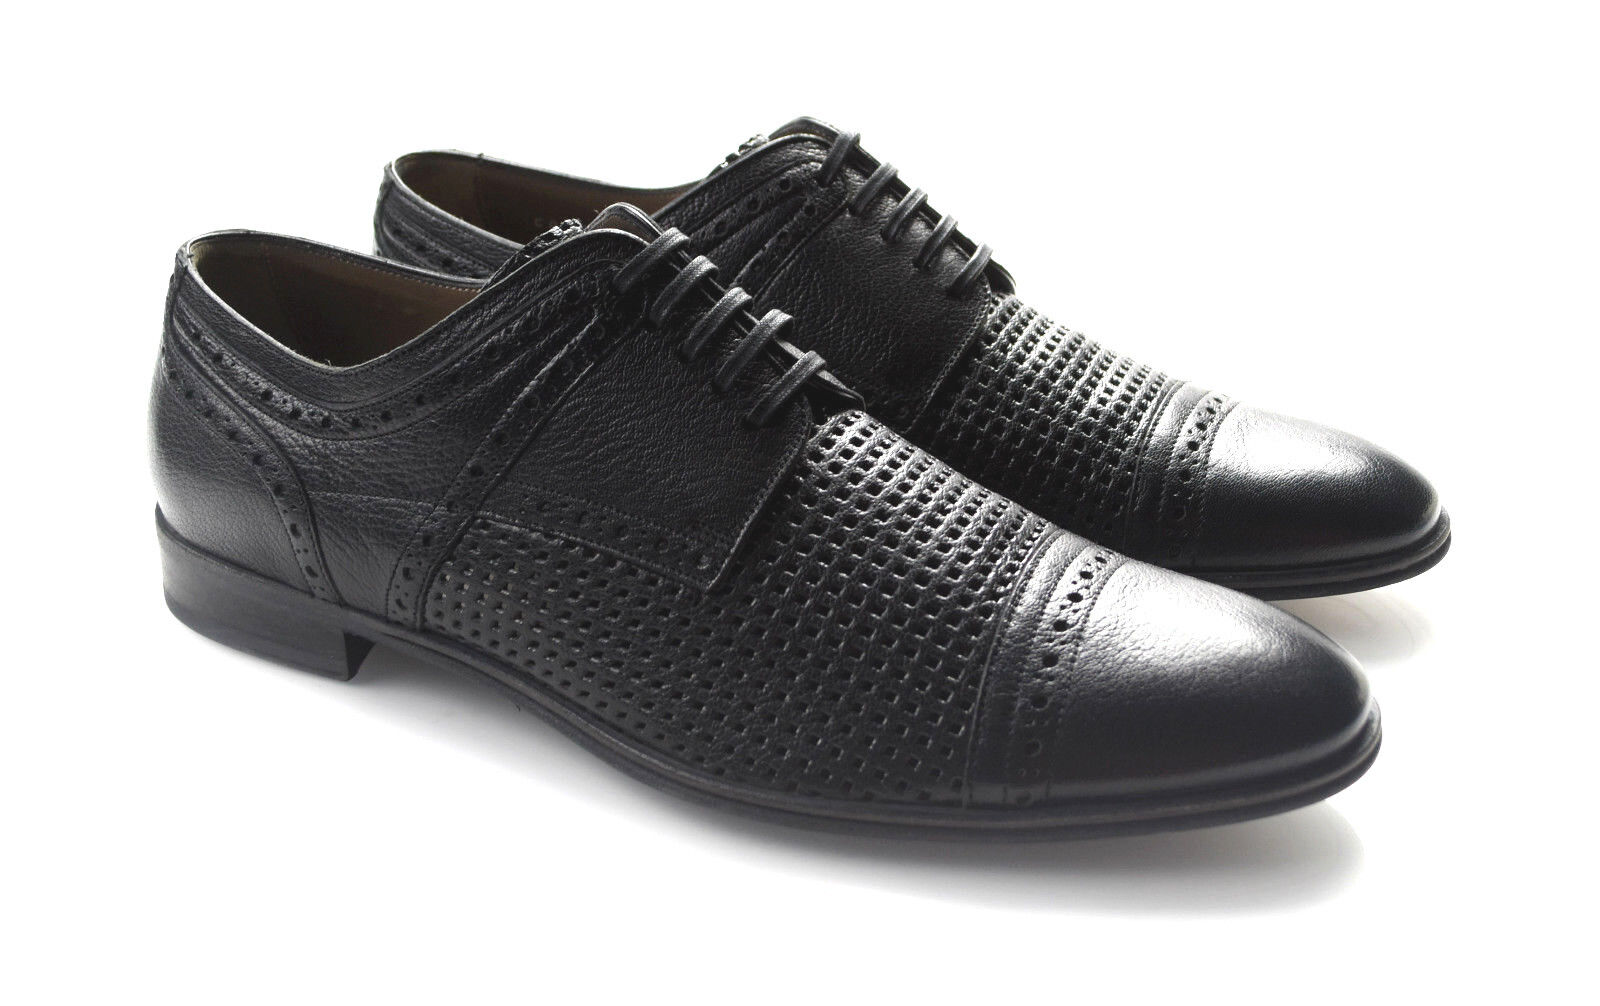 Dolce & Gabbana Men's Shoes Derby